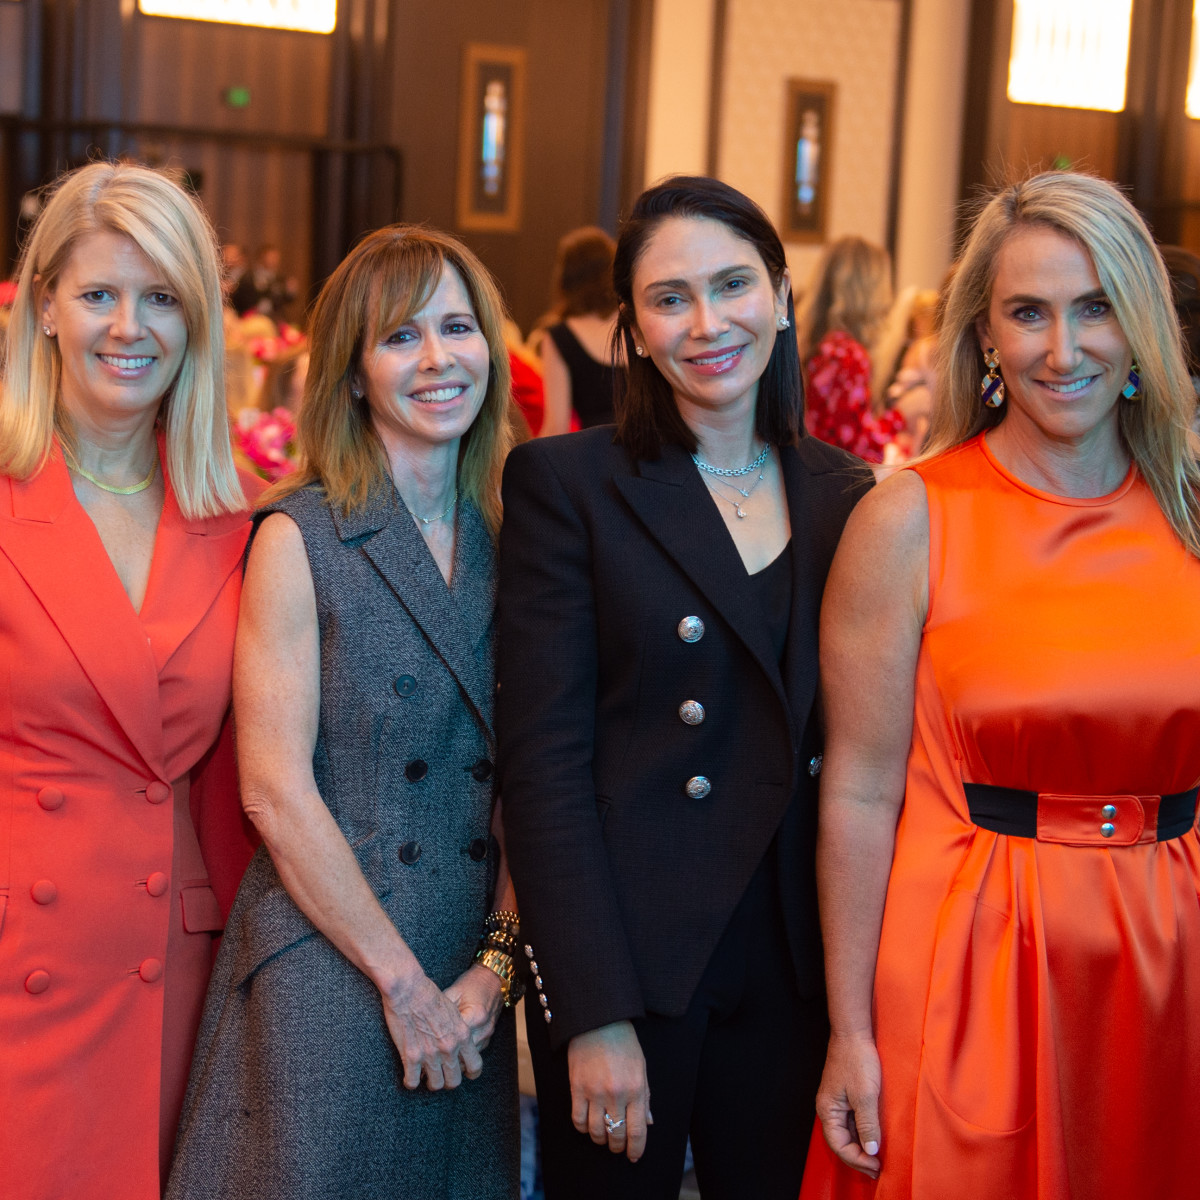 Razzle Dazzle Luncheon 2019 Jenny Kempner, Martha Long, Jennie Segal, Courtney Sarofim